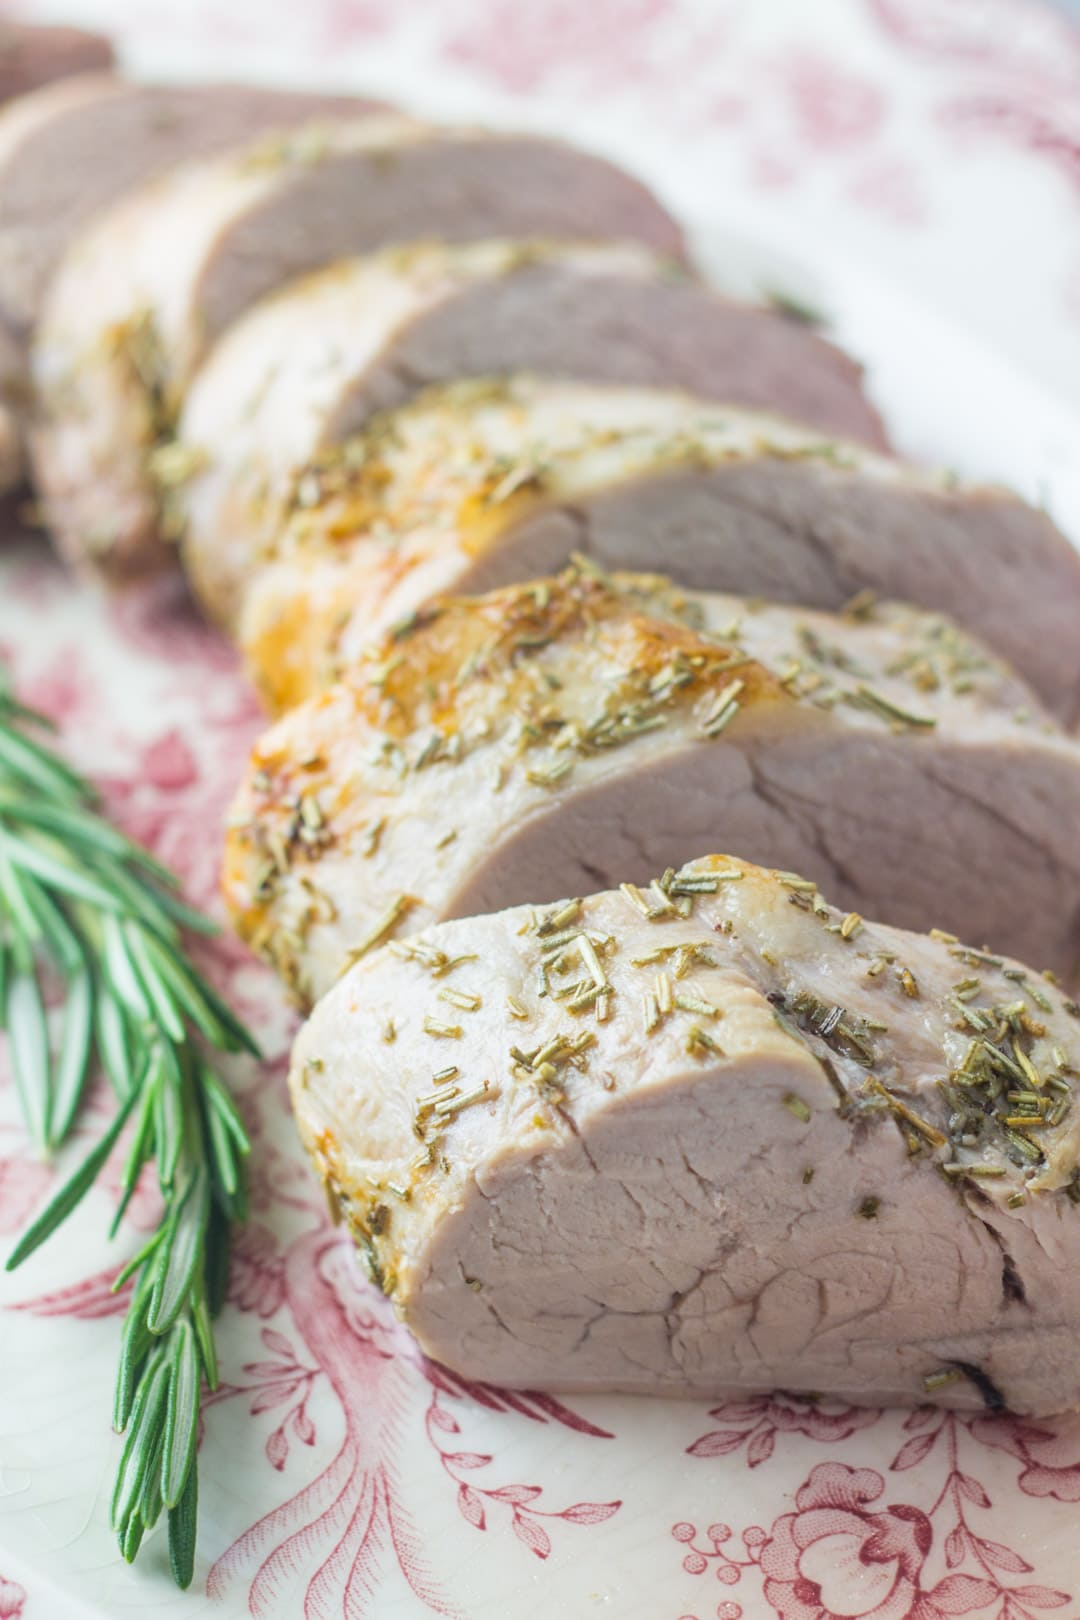 Slices of low FODMAP pork tenderloin with rosemary